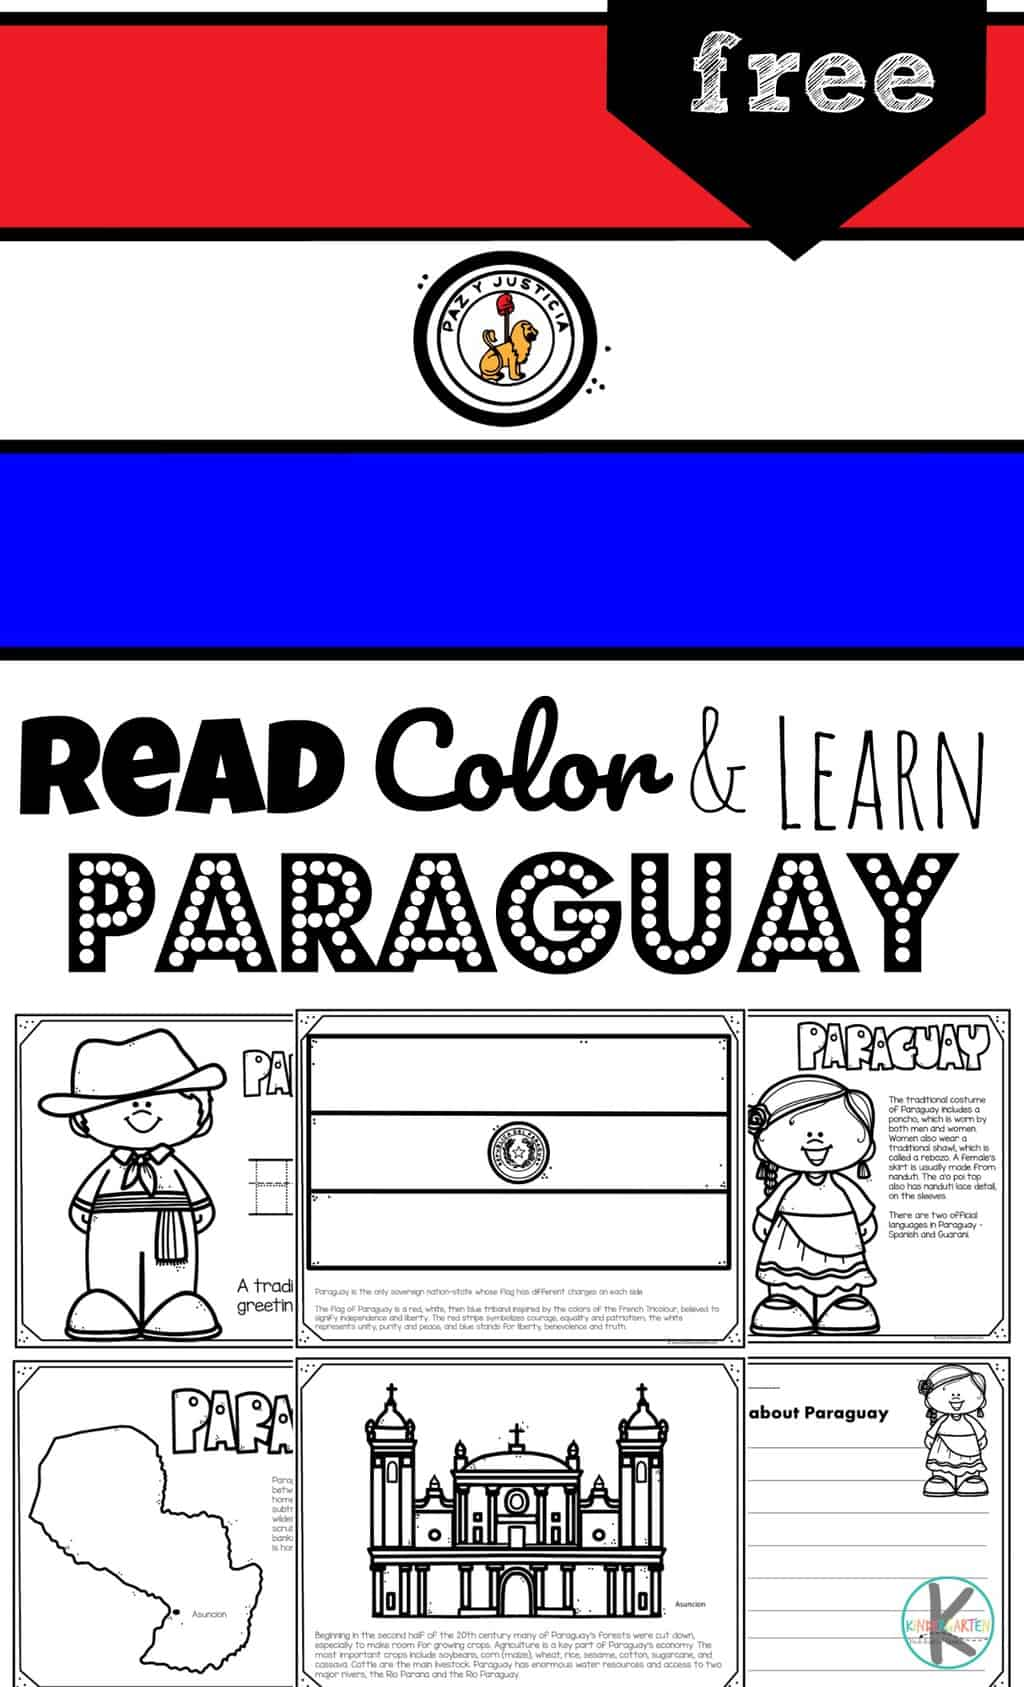 Free Read Color And Learn About Paraguay